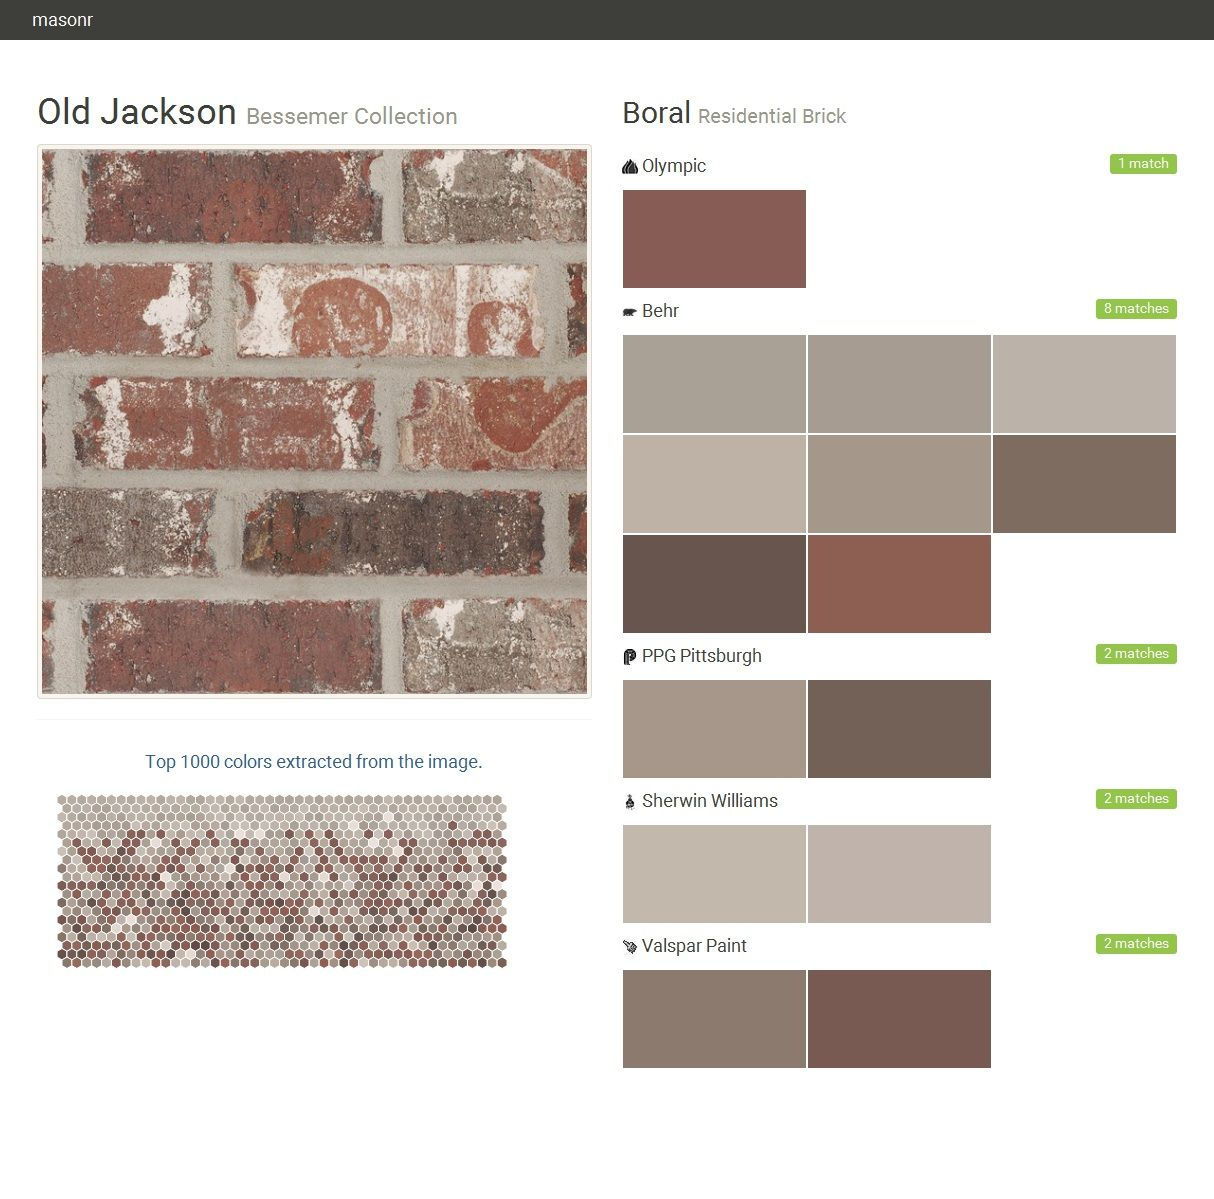 Residential Brick B Behr Olympic Ppg Paints Sherwin Williams Valspar Paint Click The Gray Visit On To See Matching Names